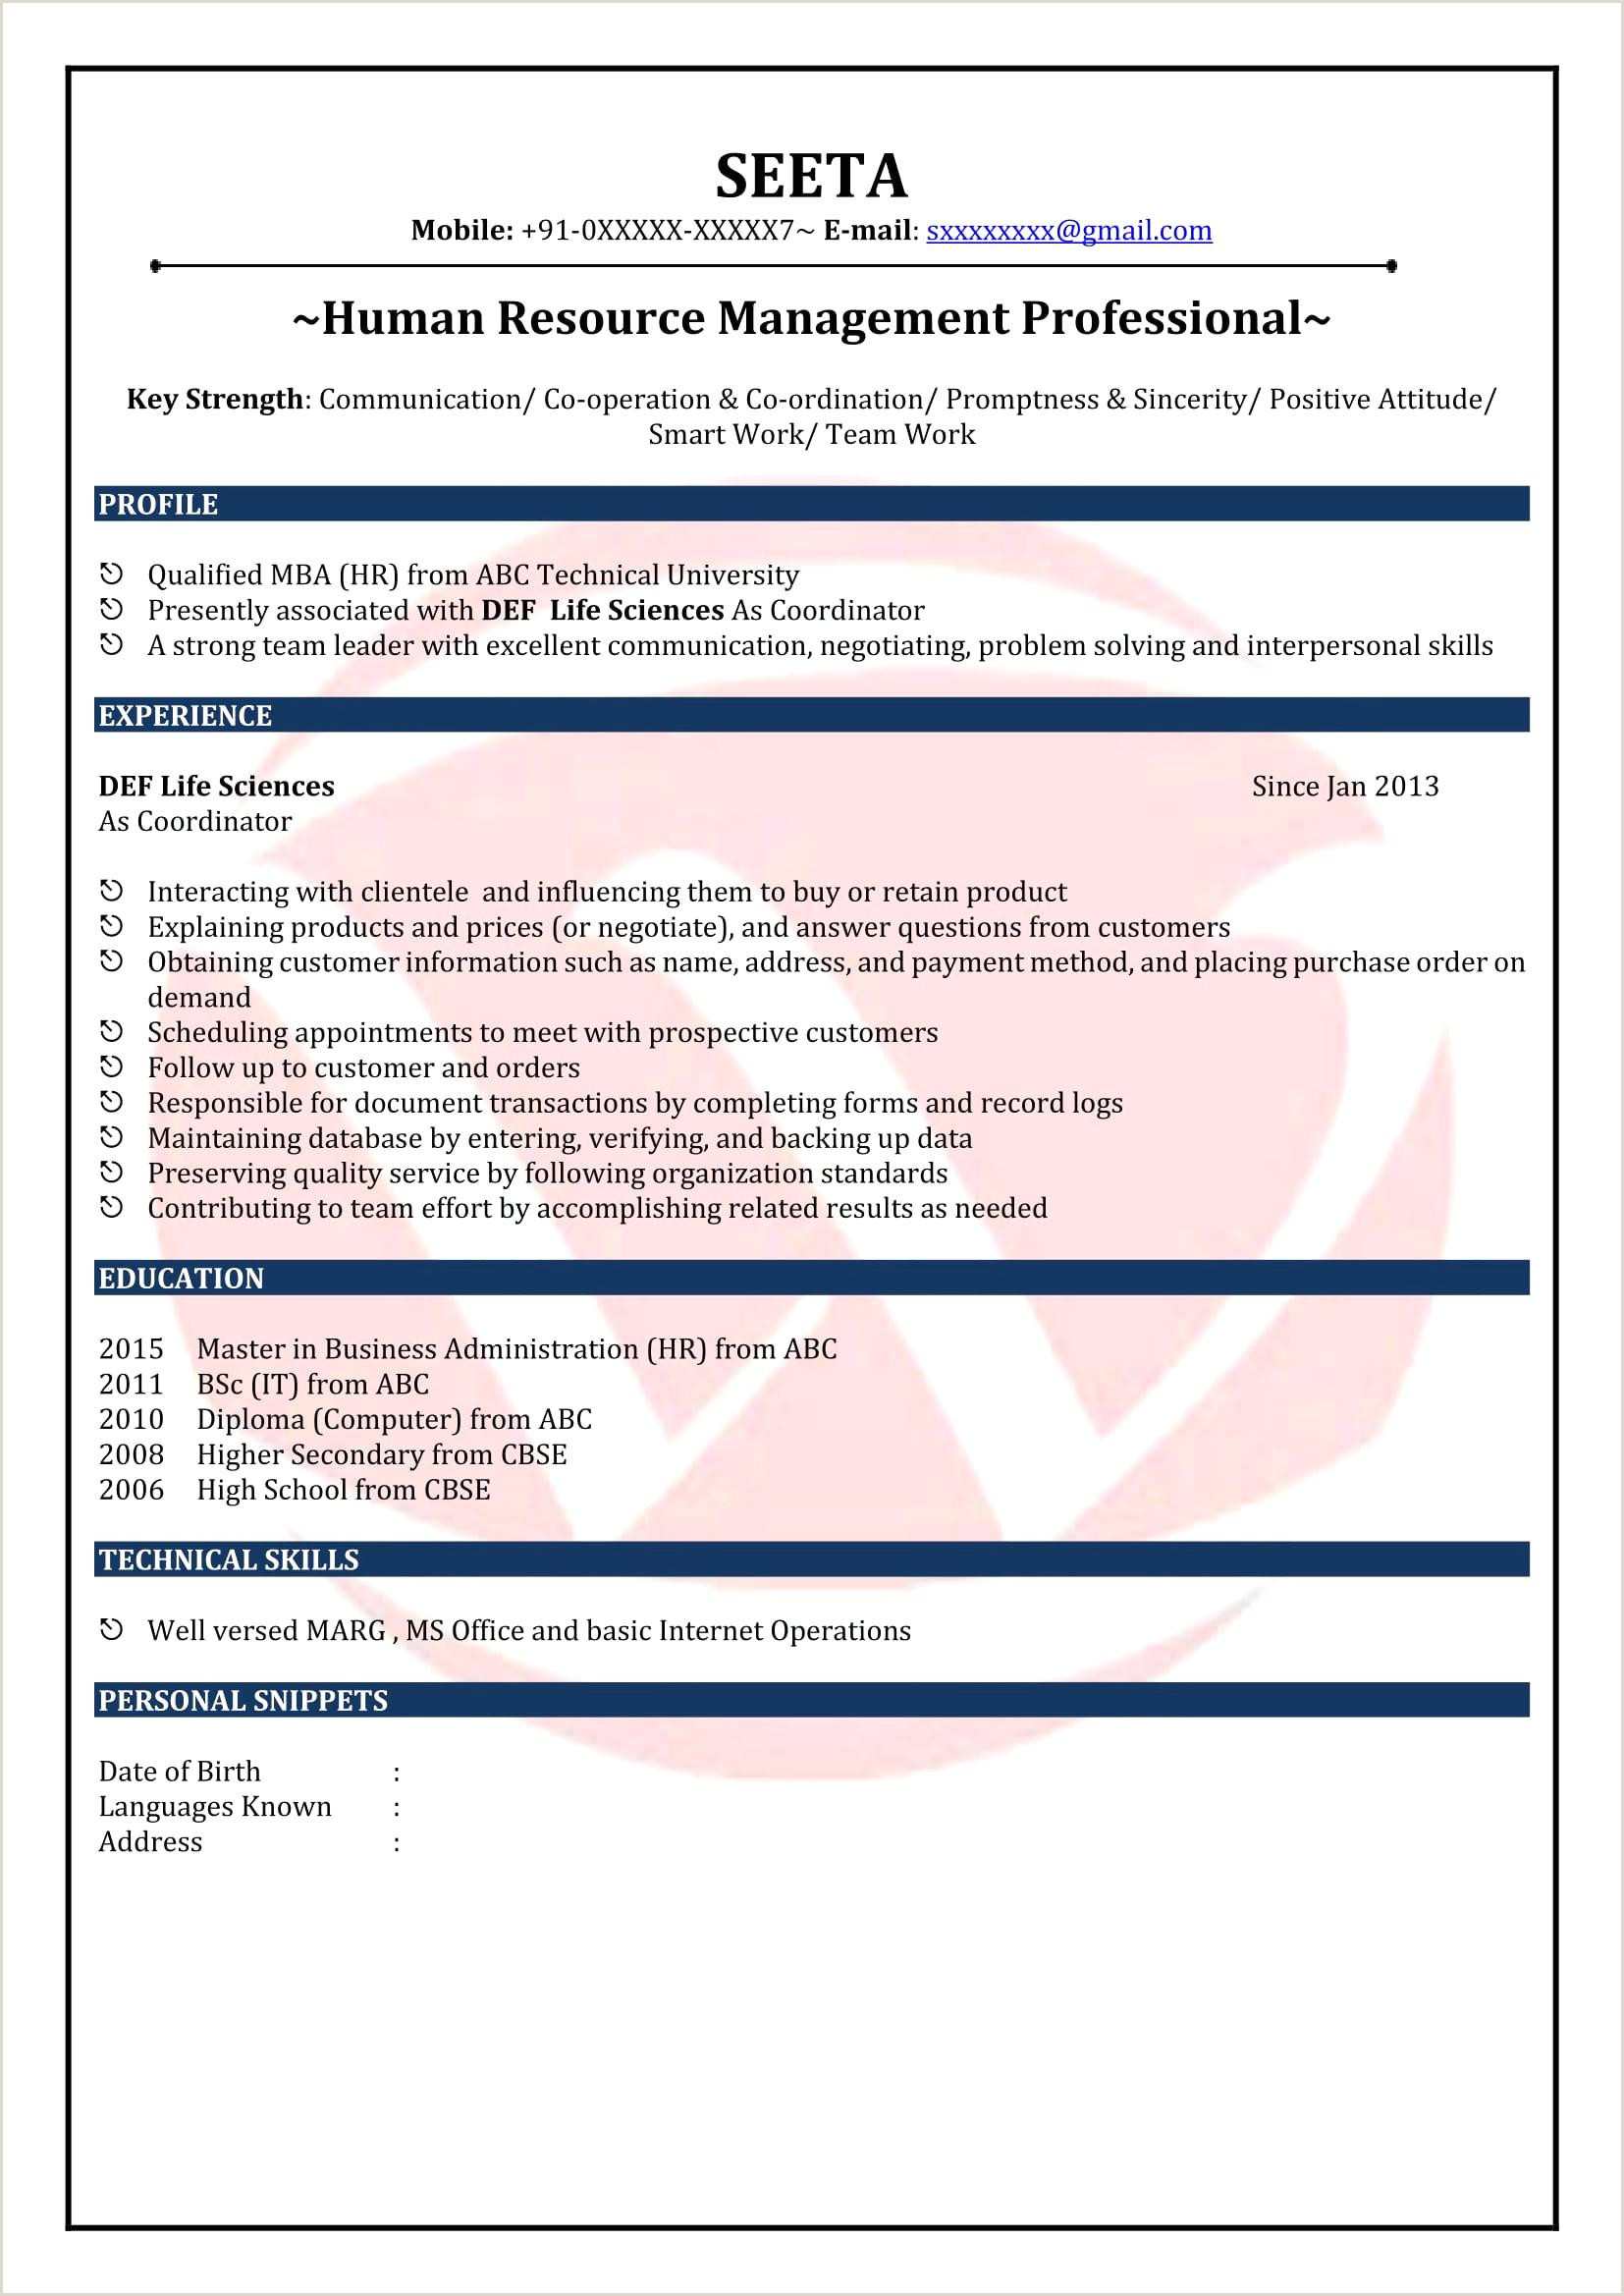 Fresher Resume format Pdf File Beautiful Mba Fresher Resume format Pdf